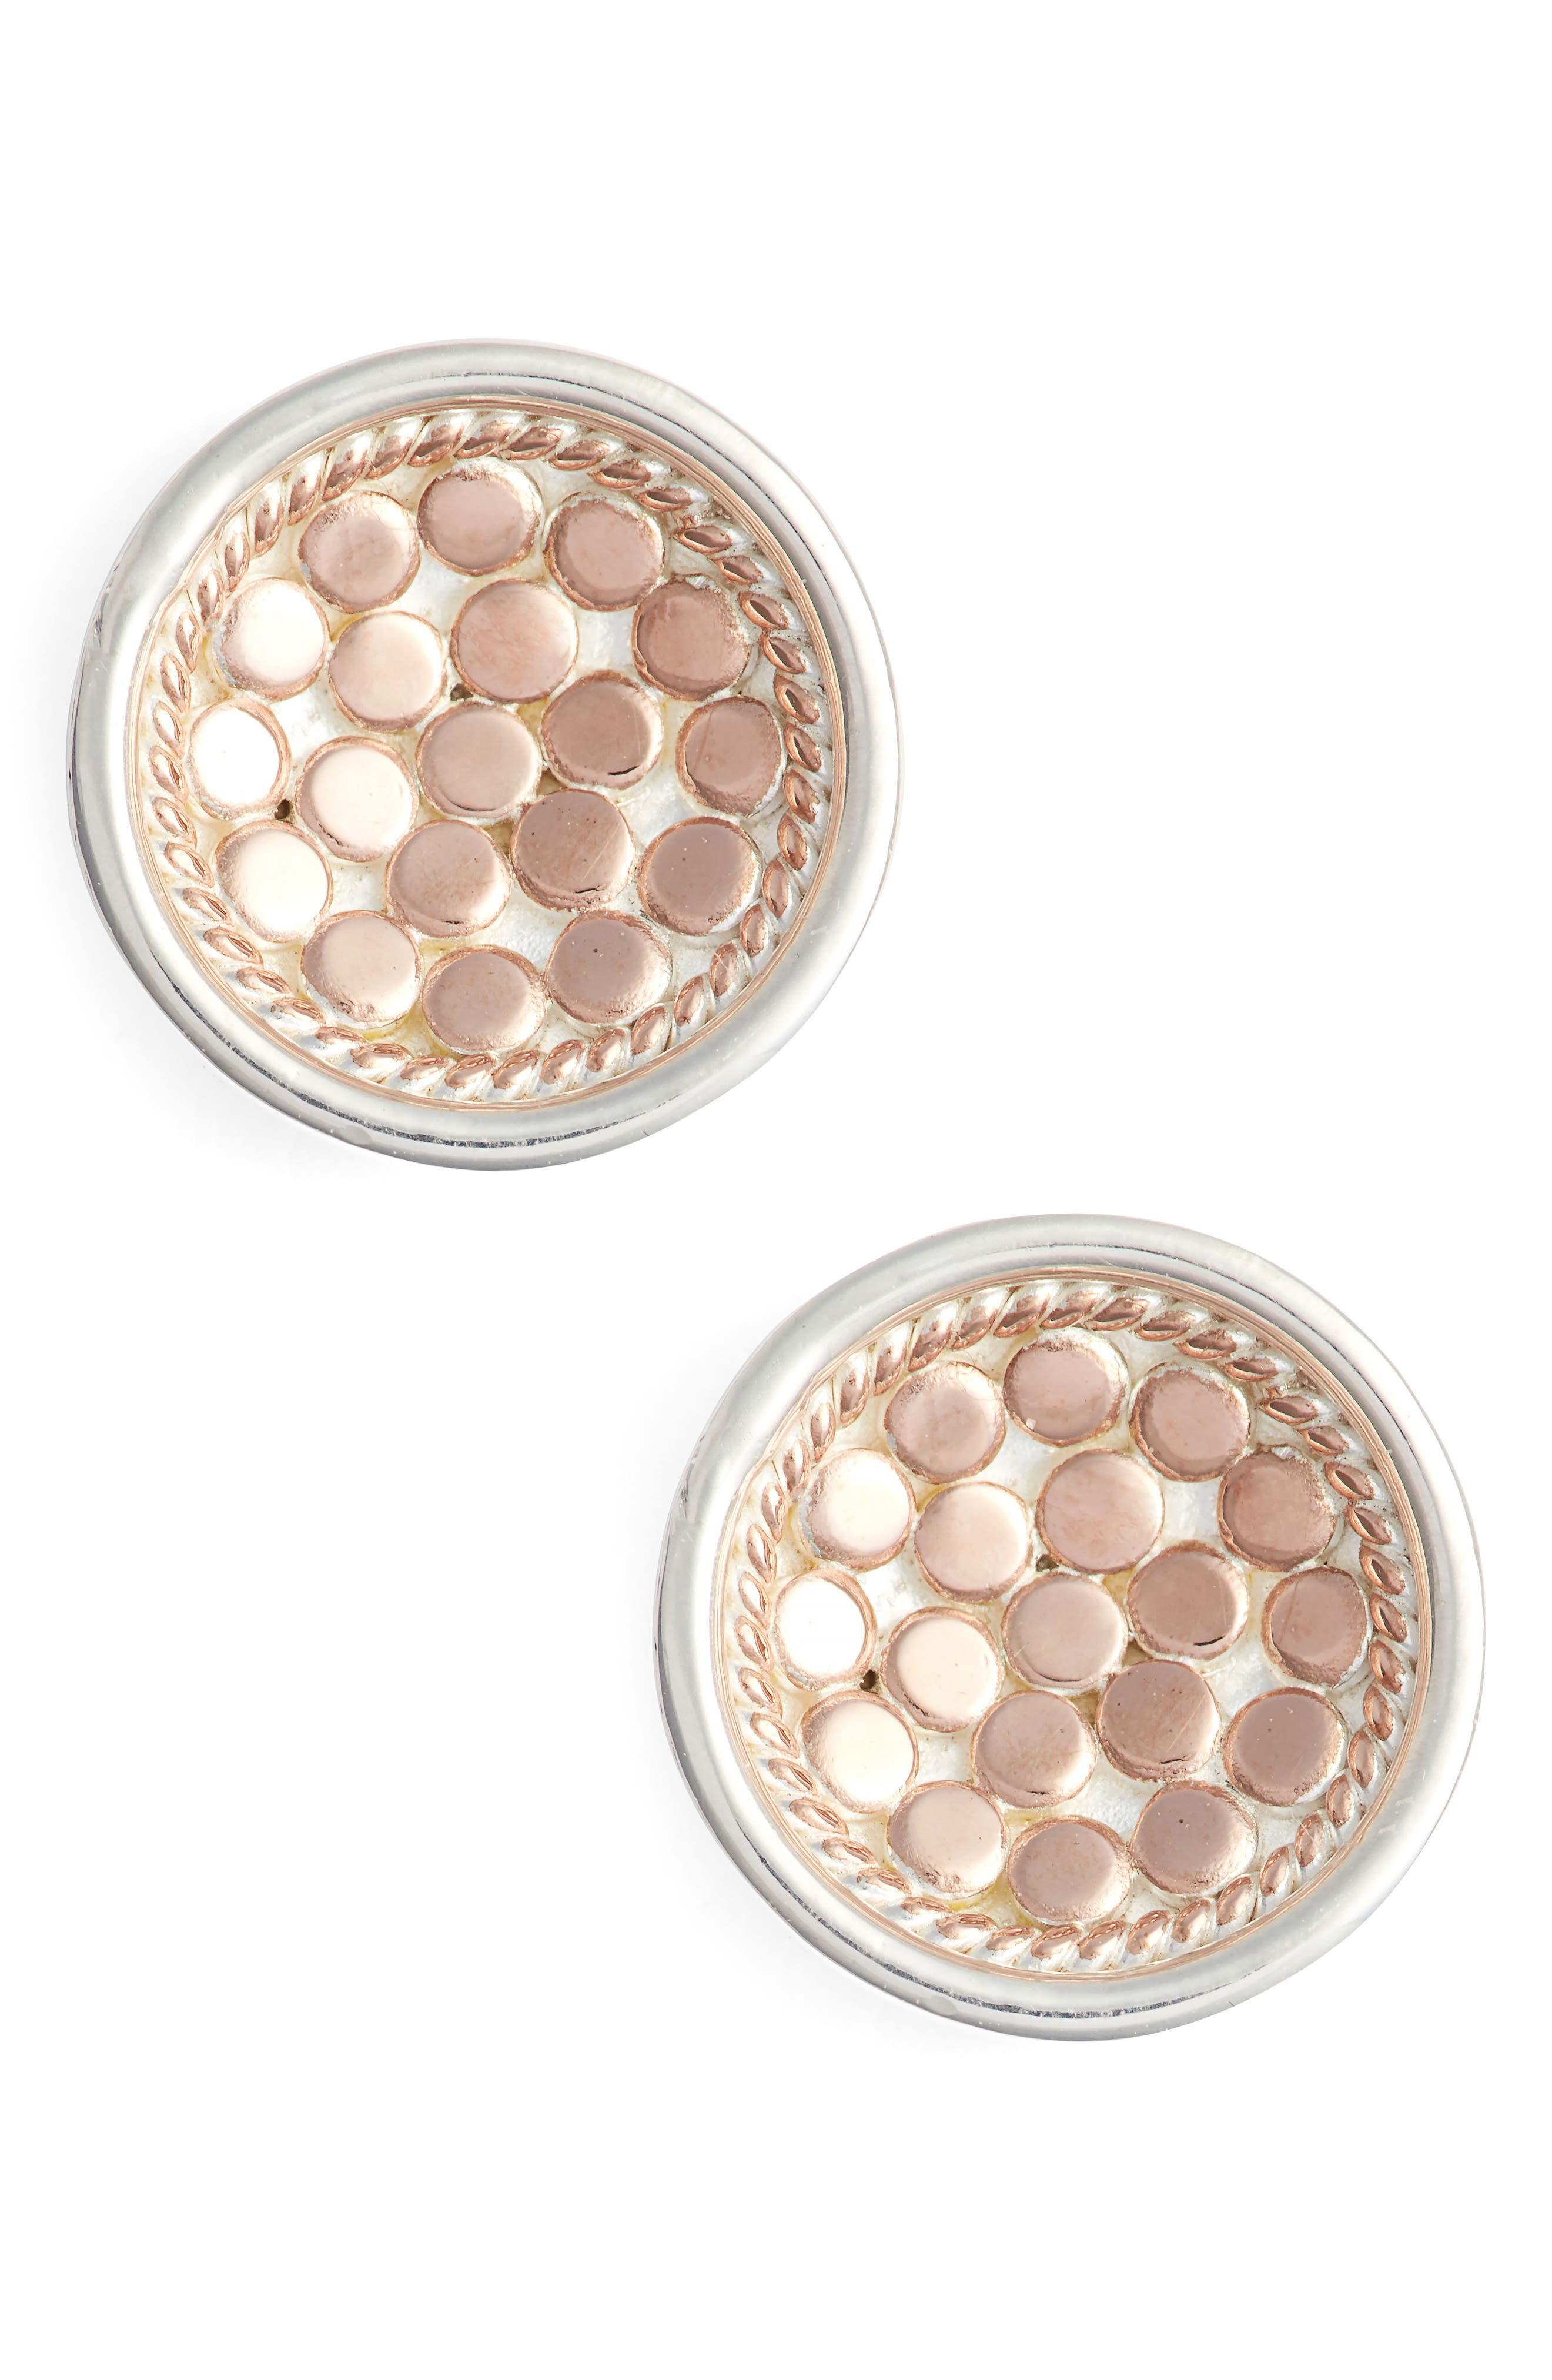 'Gili' Small Dish Stud Earrings,                         Main,                         color, Rose Gold/ Silver